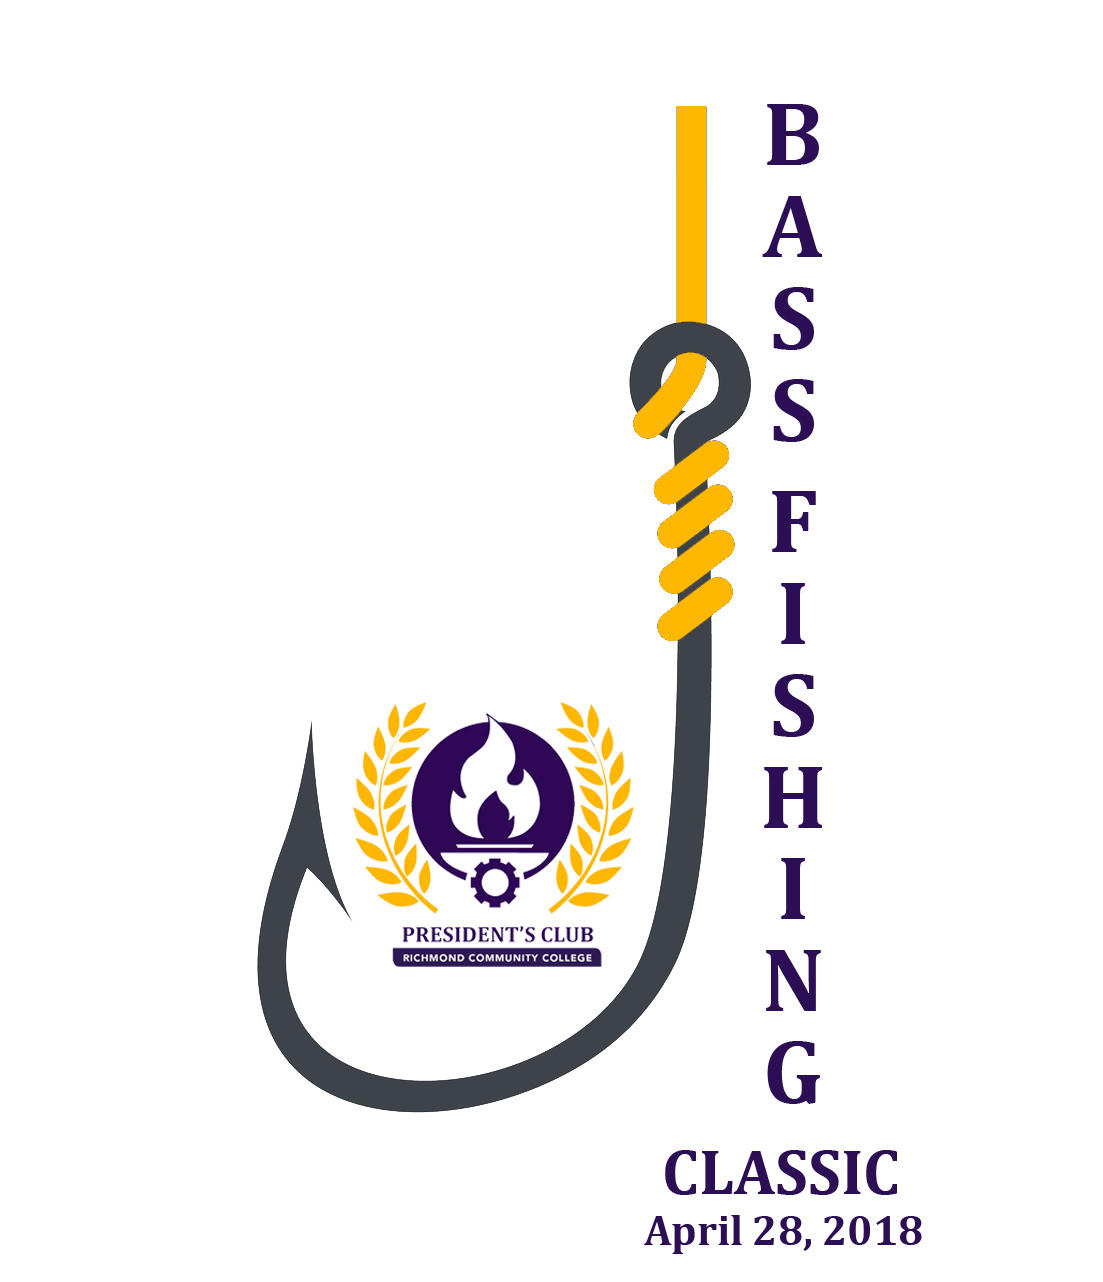 Bass Fishing Classic - April 28, 2018 - Fishing hook with President's Club Logo